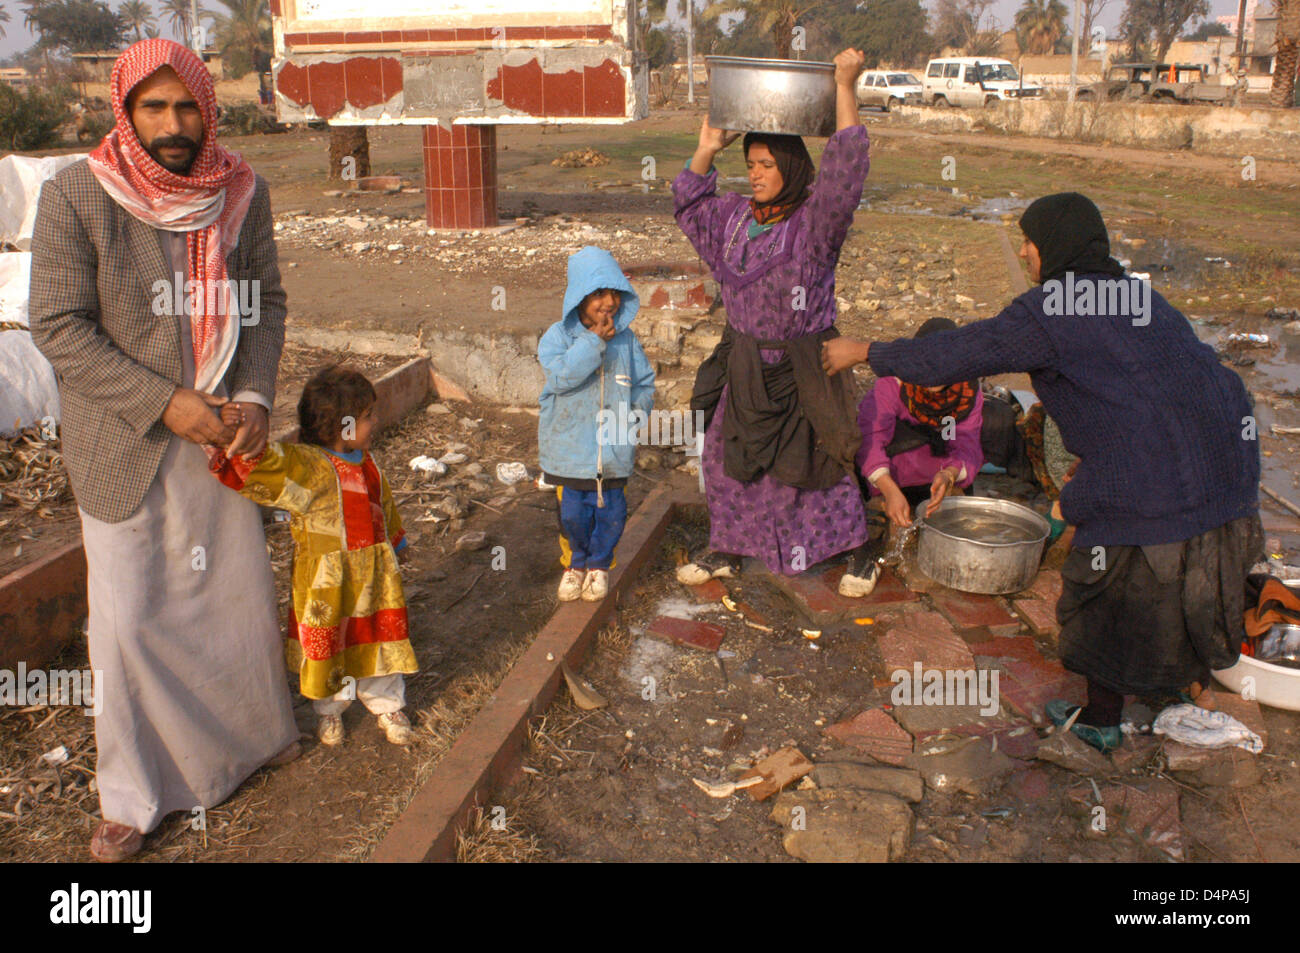 After the war, the Iraqi standard of living has declined sharply, and that poverty has many consequences for the - Stock Image